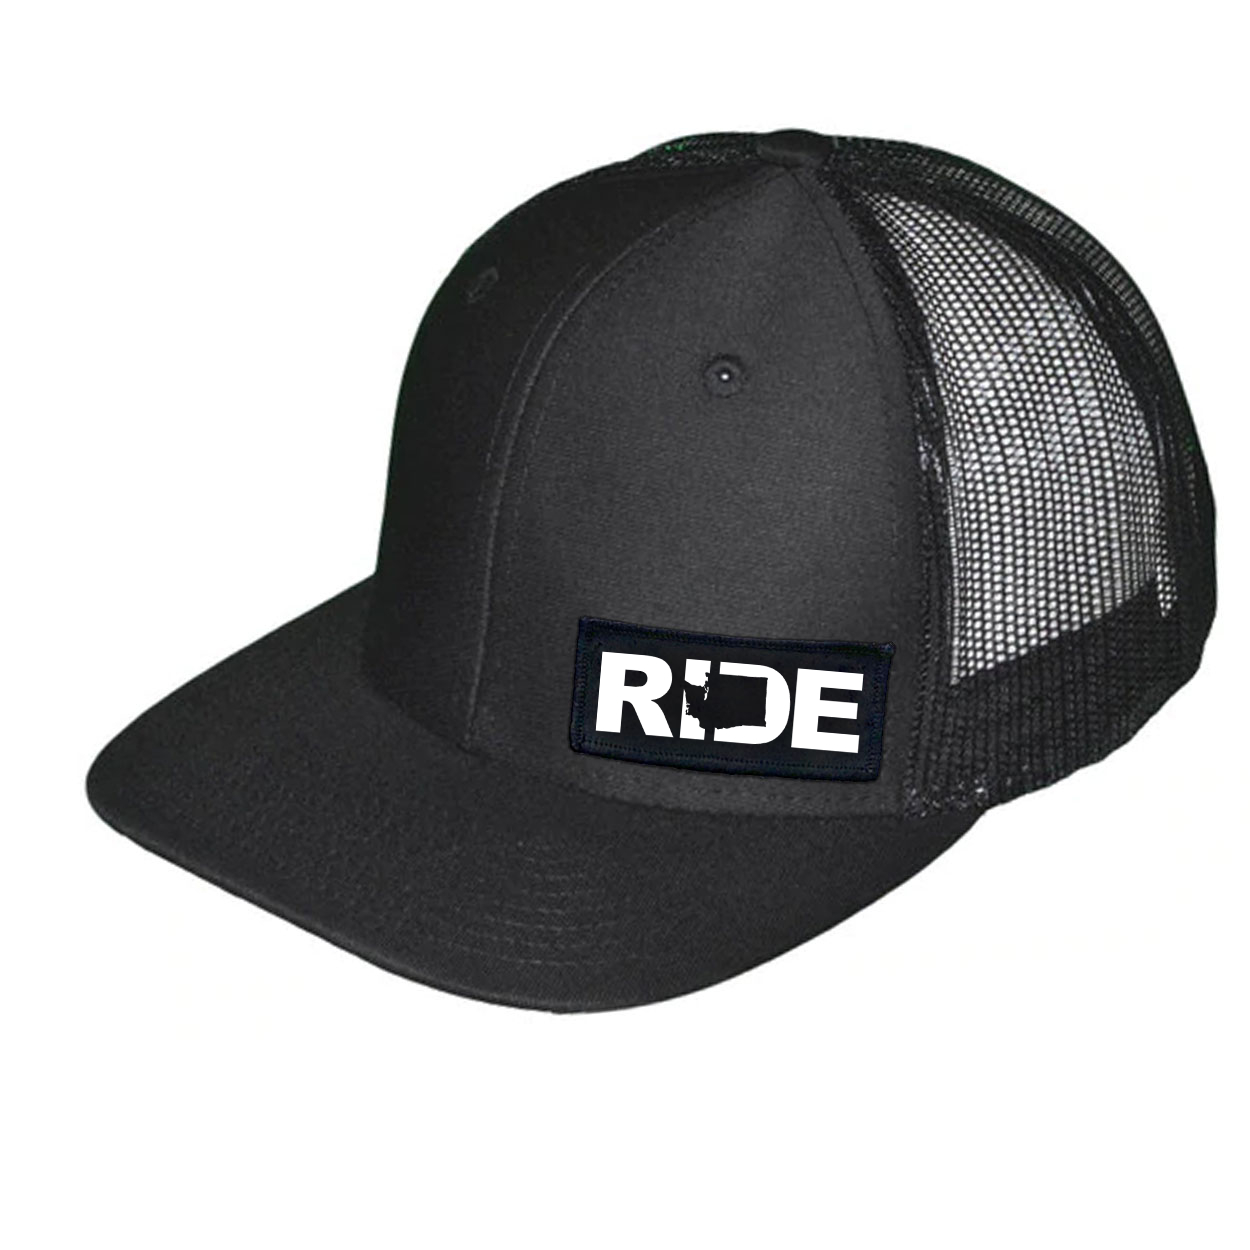 Ride Washington Night Out Woven Patch Snapback Trucker Hat Black (White Logo)